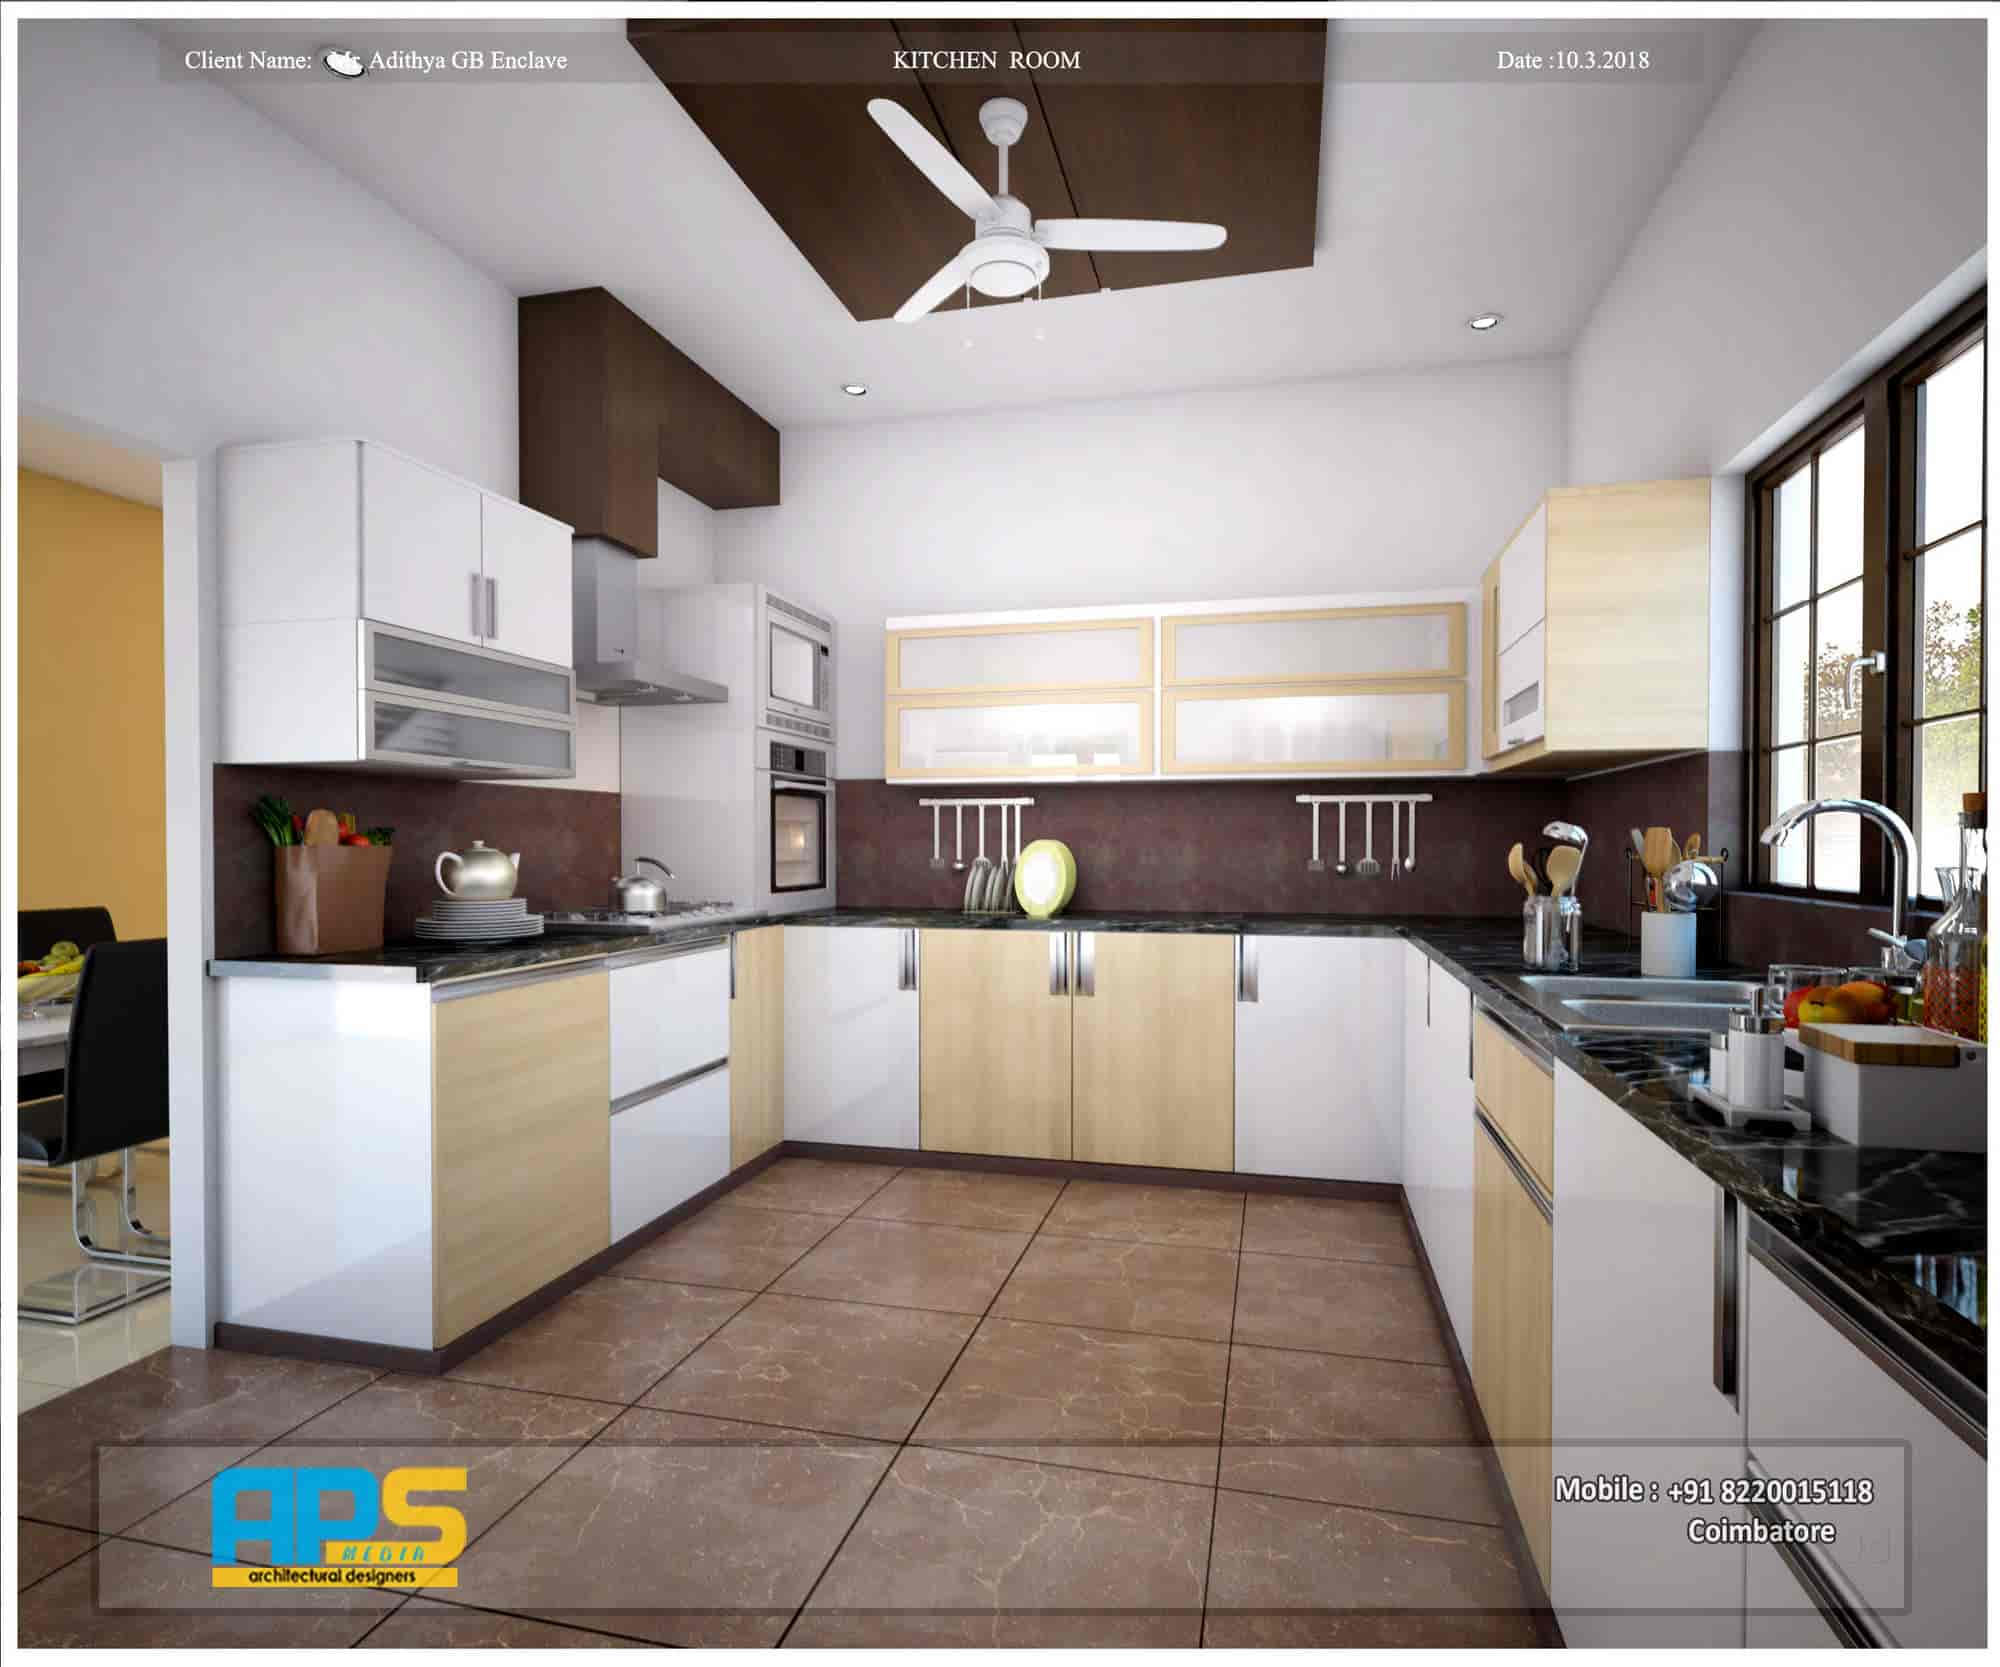 APS Media, Sowripalayam - Architects in Coimbatore - Justdial